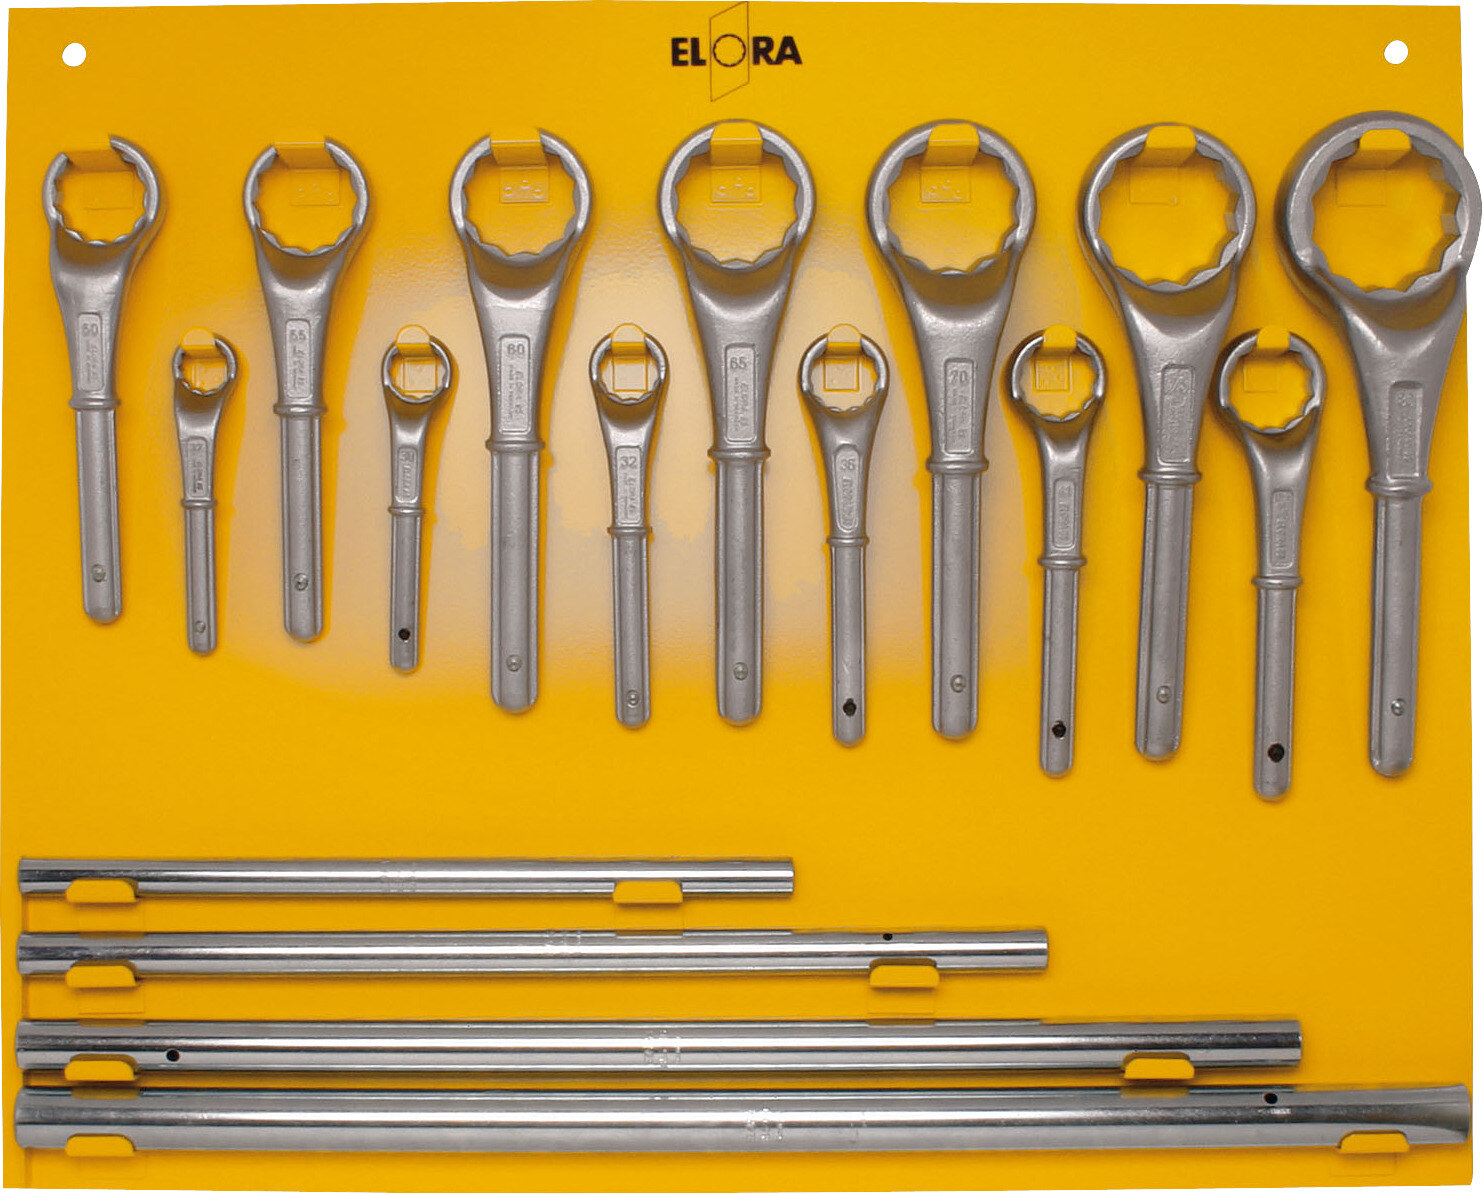 ELORA Metal display board for Constr. Ring Spanner-Sets, 16+17-pcs., ELORA-85L